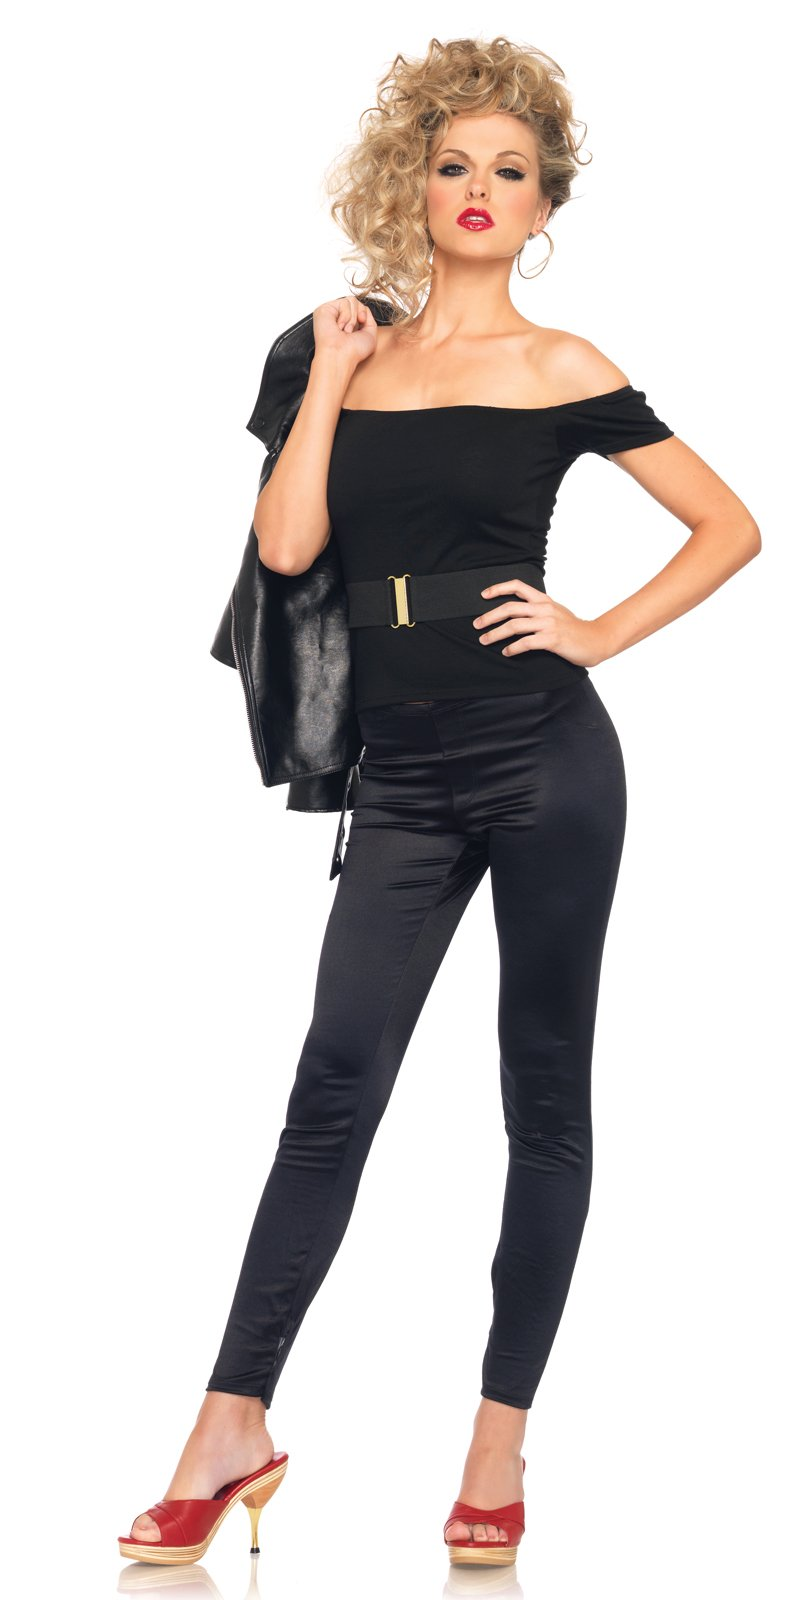 Grease Bad Sandy Outfit Adult Costume